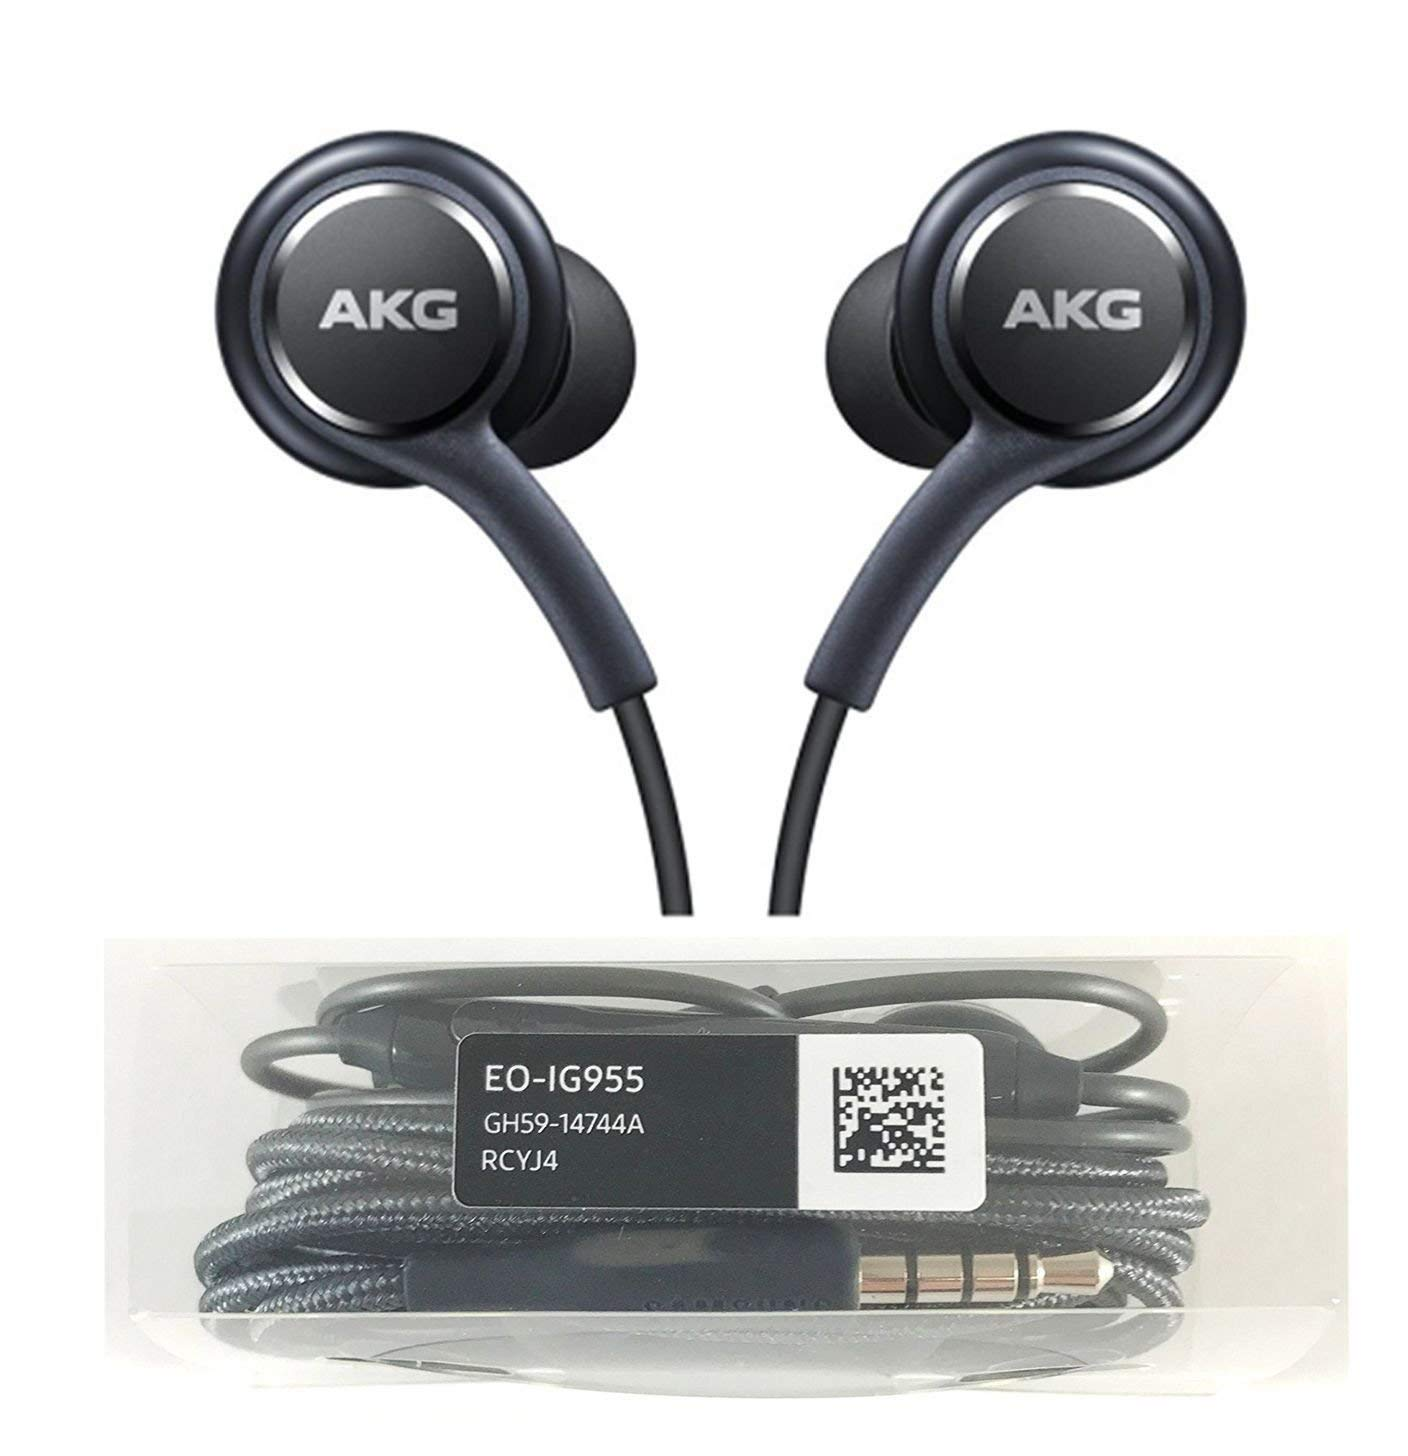 AKG Wired With Mic Earphone With 3.5mm Jack Best For Mobile Gaming